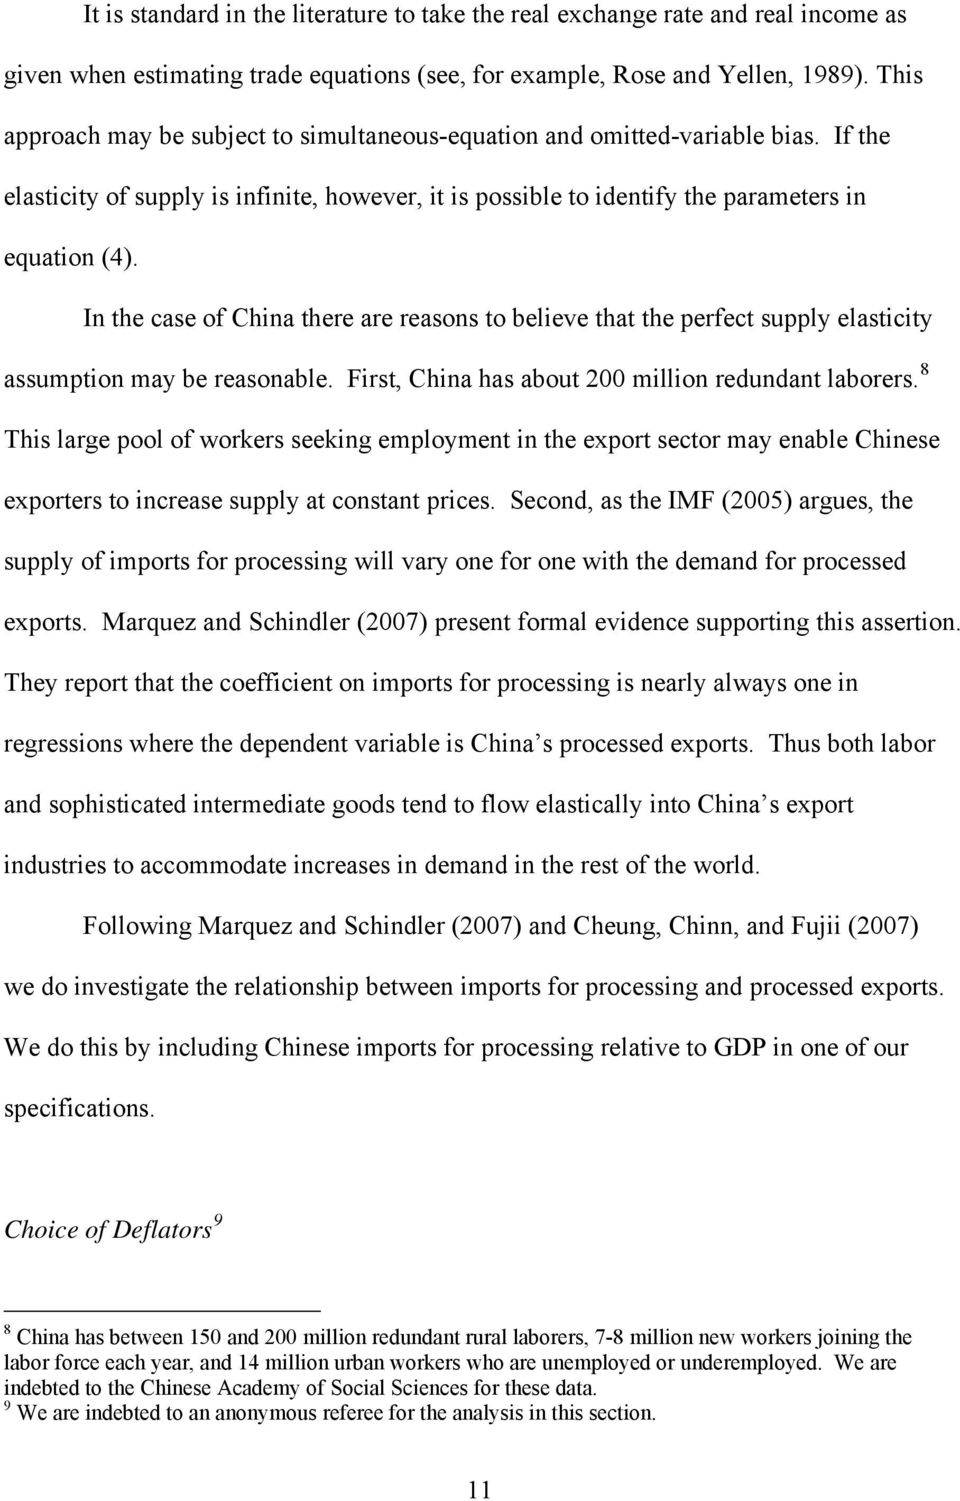 In he case of China here are reasons o believe ha he perfec supply elasiciy assumpion may be reasonable. Firs, China has abou 200 million redundan laborers.